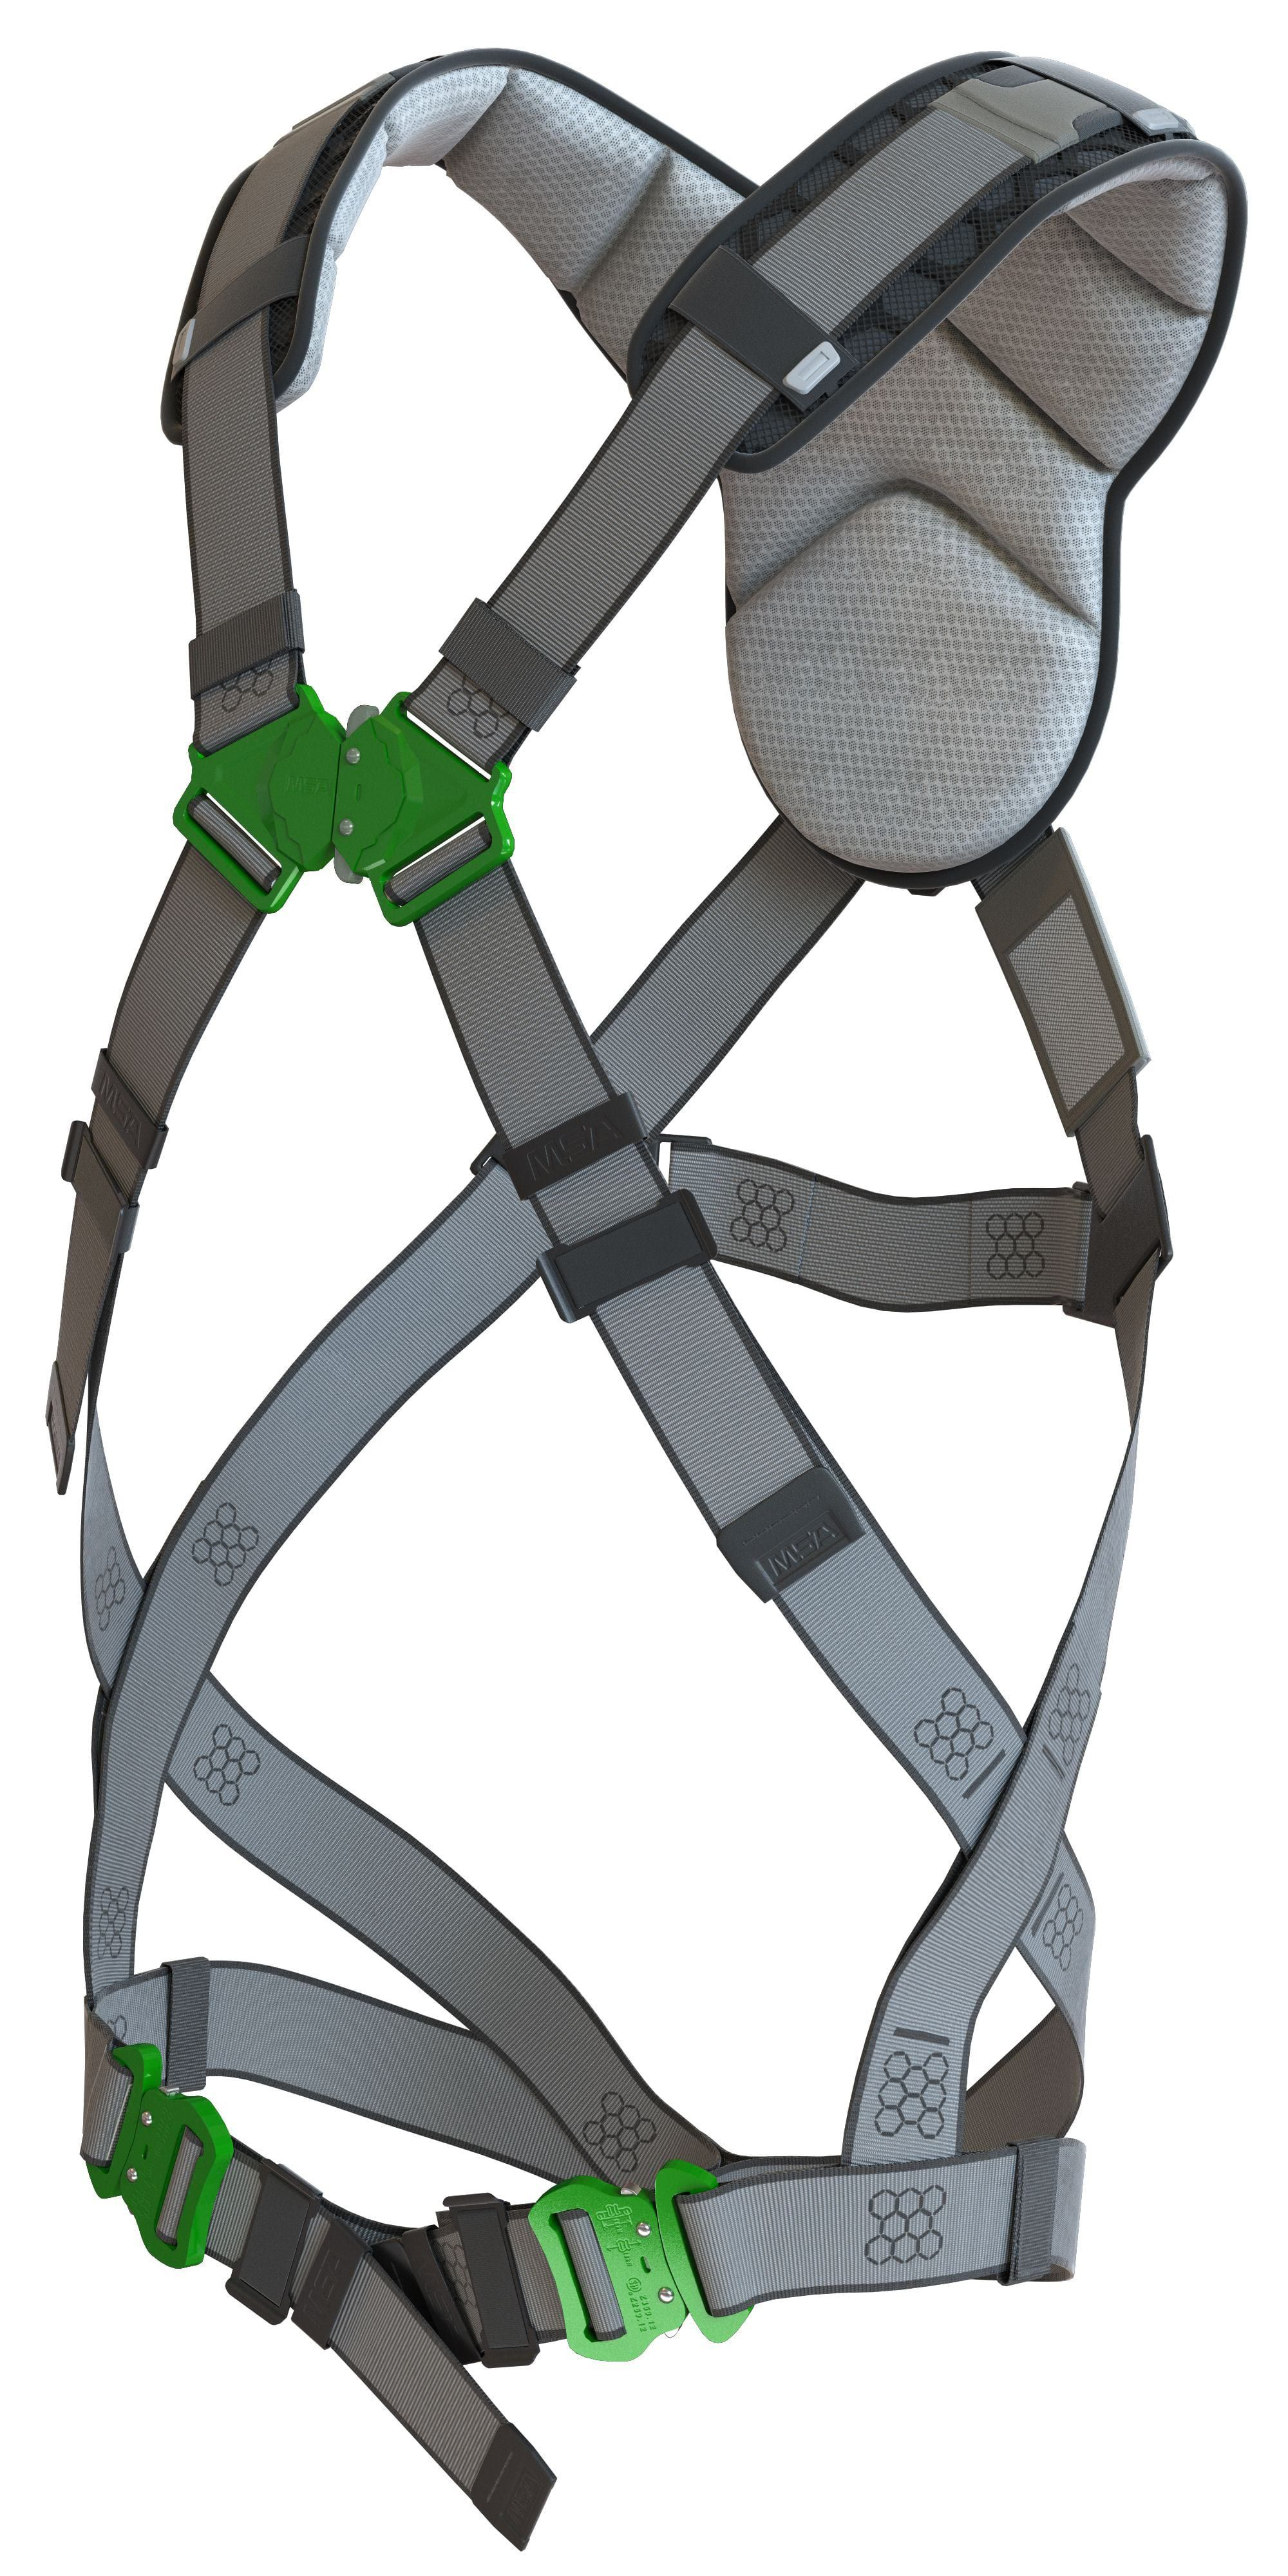 An angled view of the MSA V-FIT fall protection harness